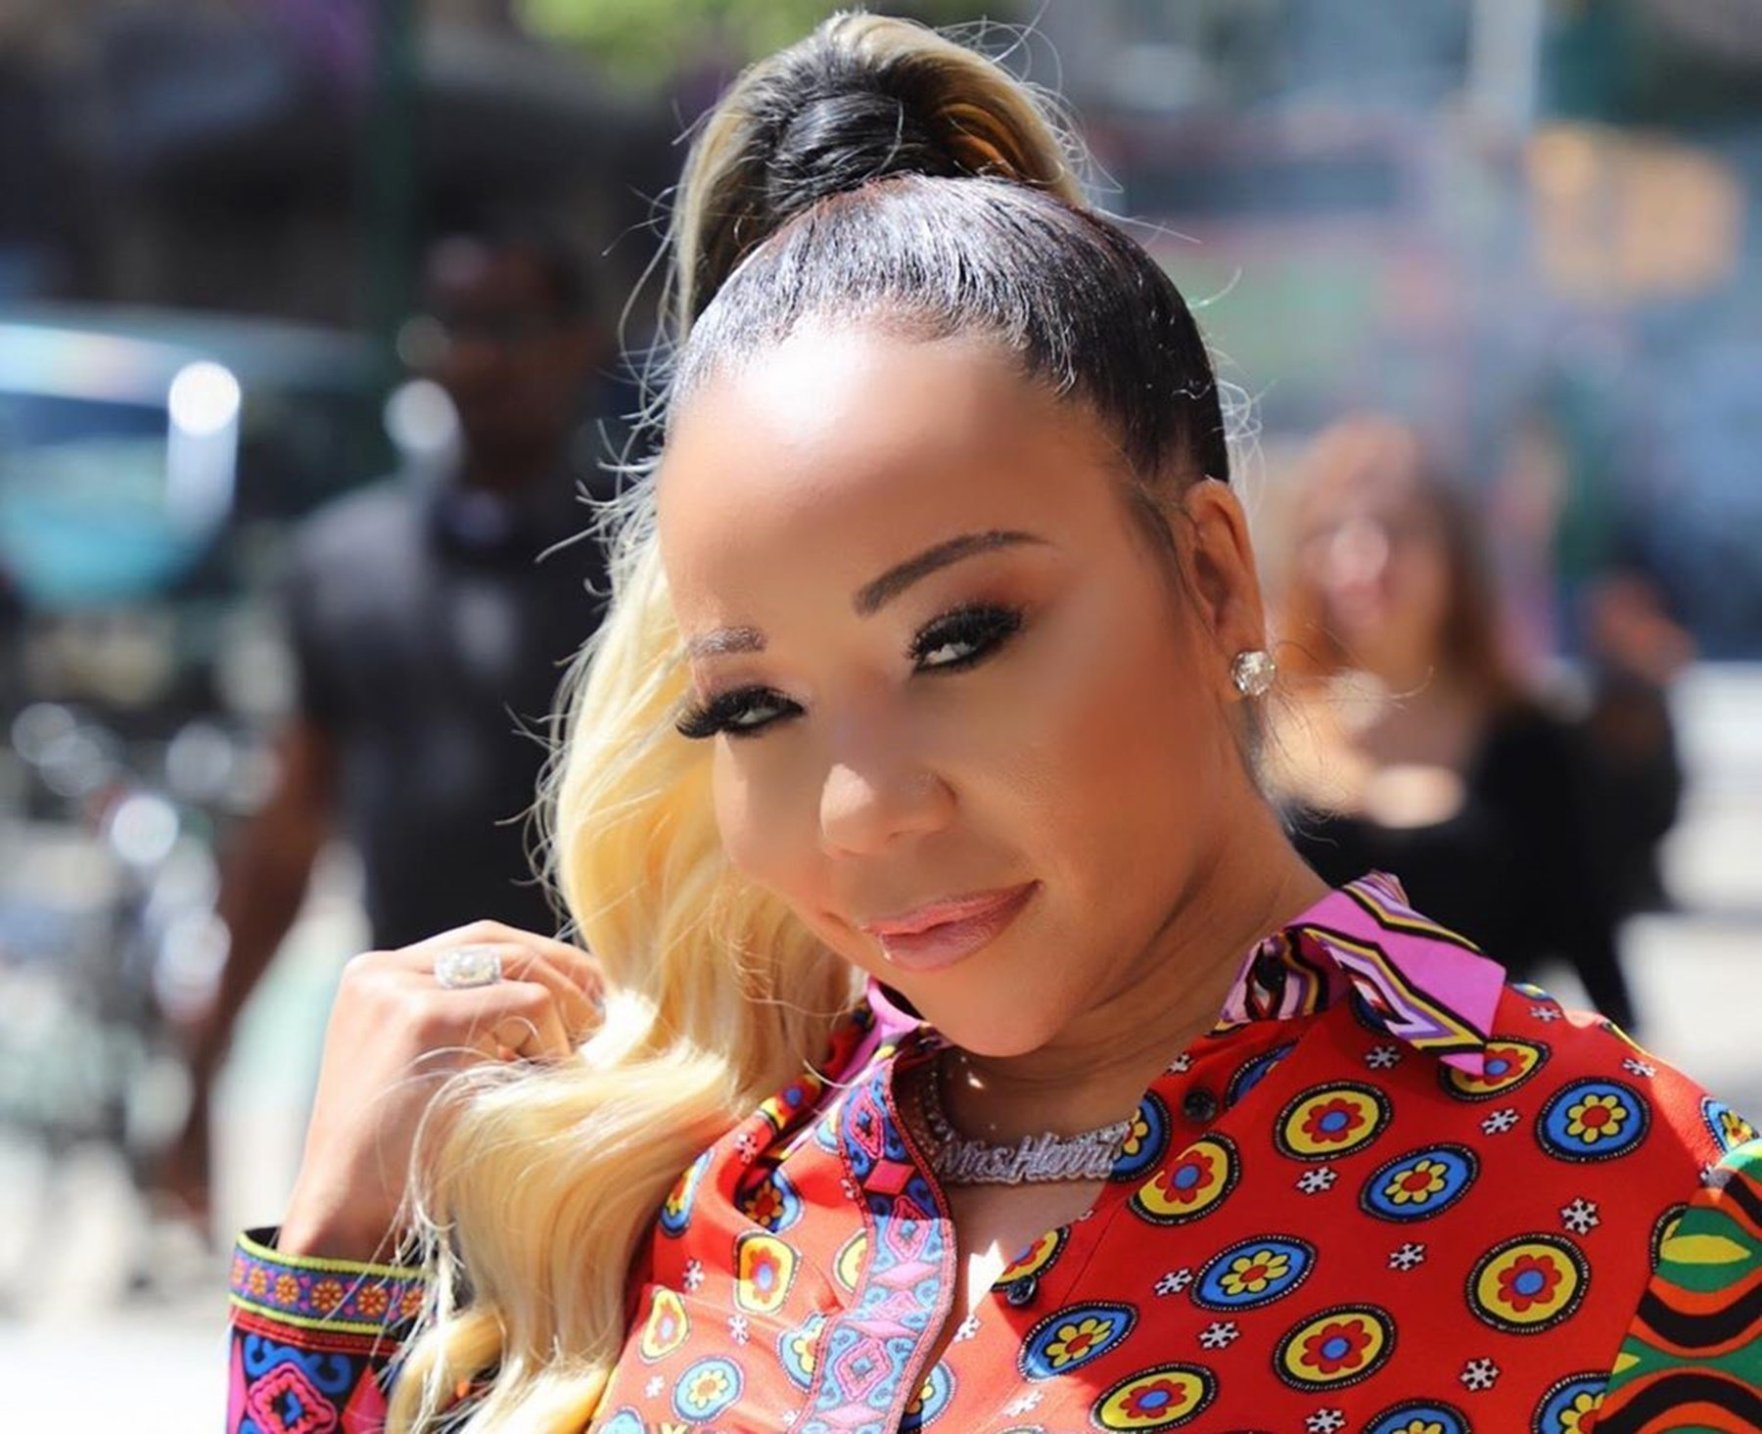 Tiny Harris Is Heartbroken By The Death Of Her Godbrother - She Shares Footage From Marquinarius 'Sanchez' Holmes' Funeral